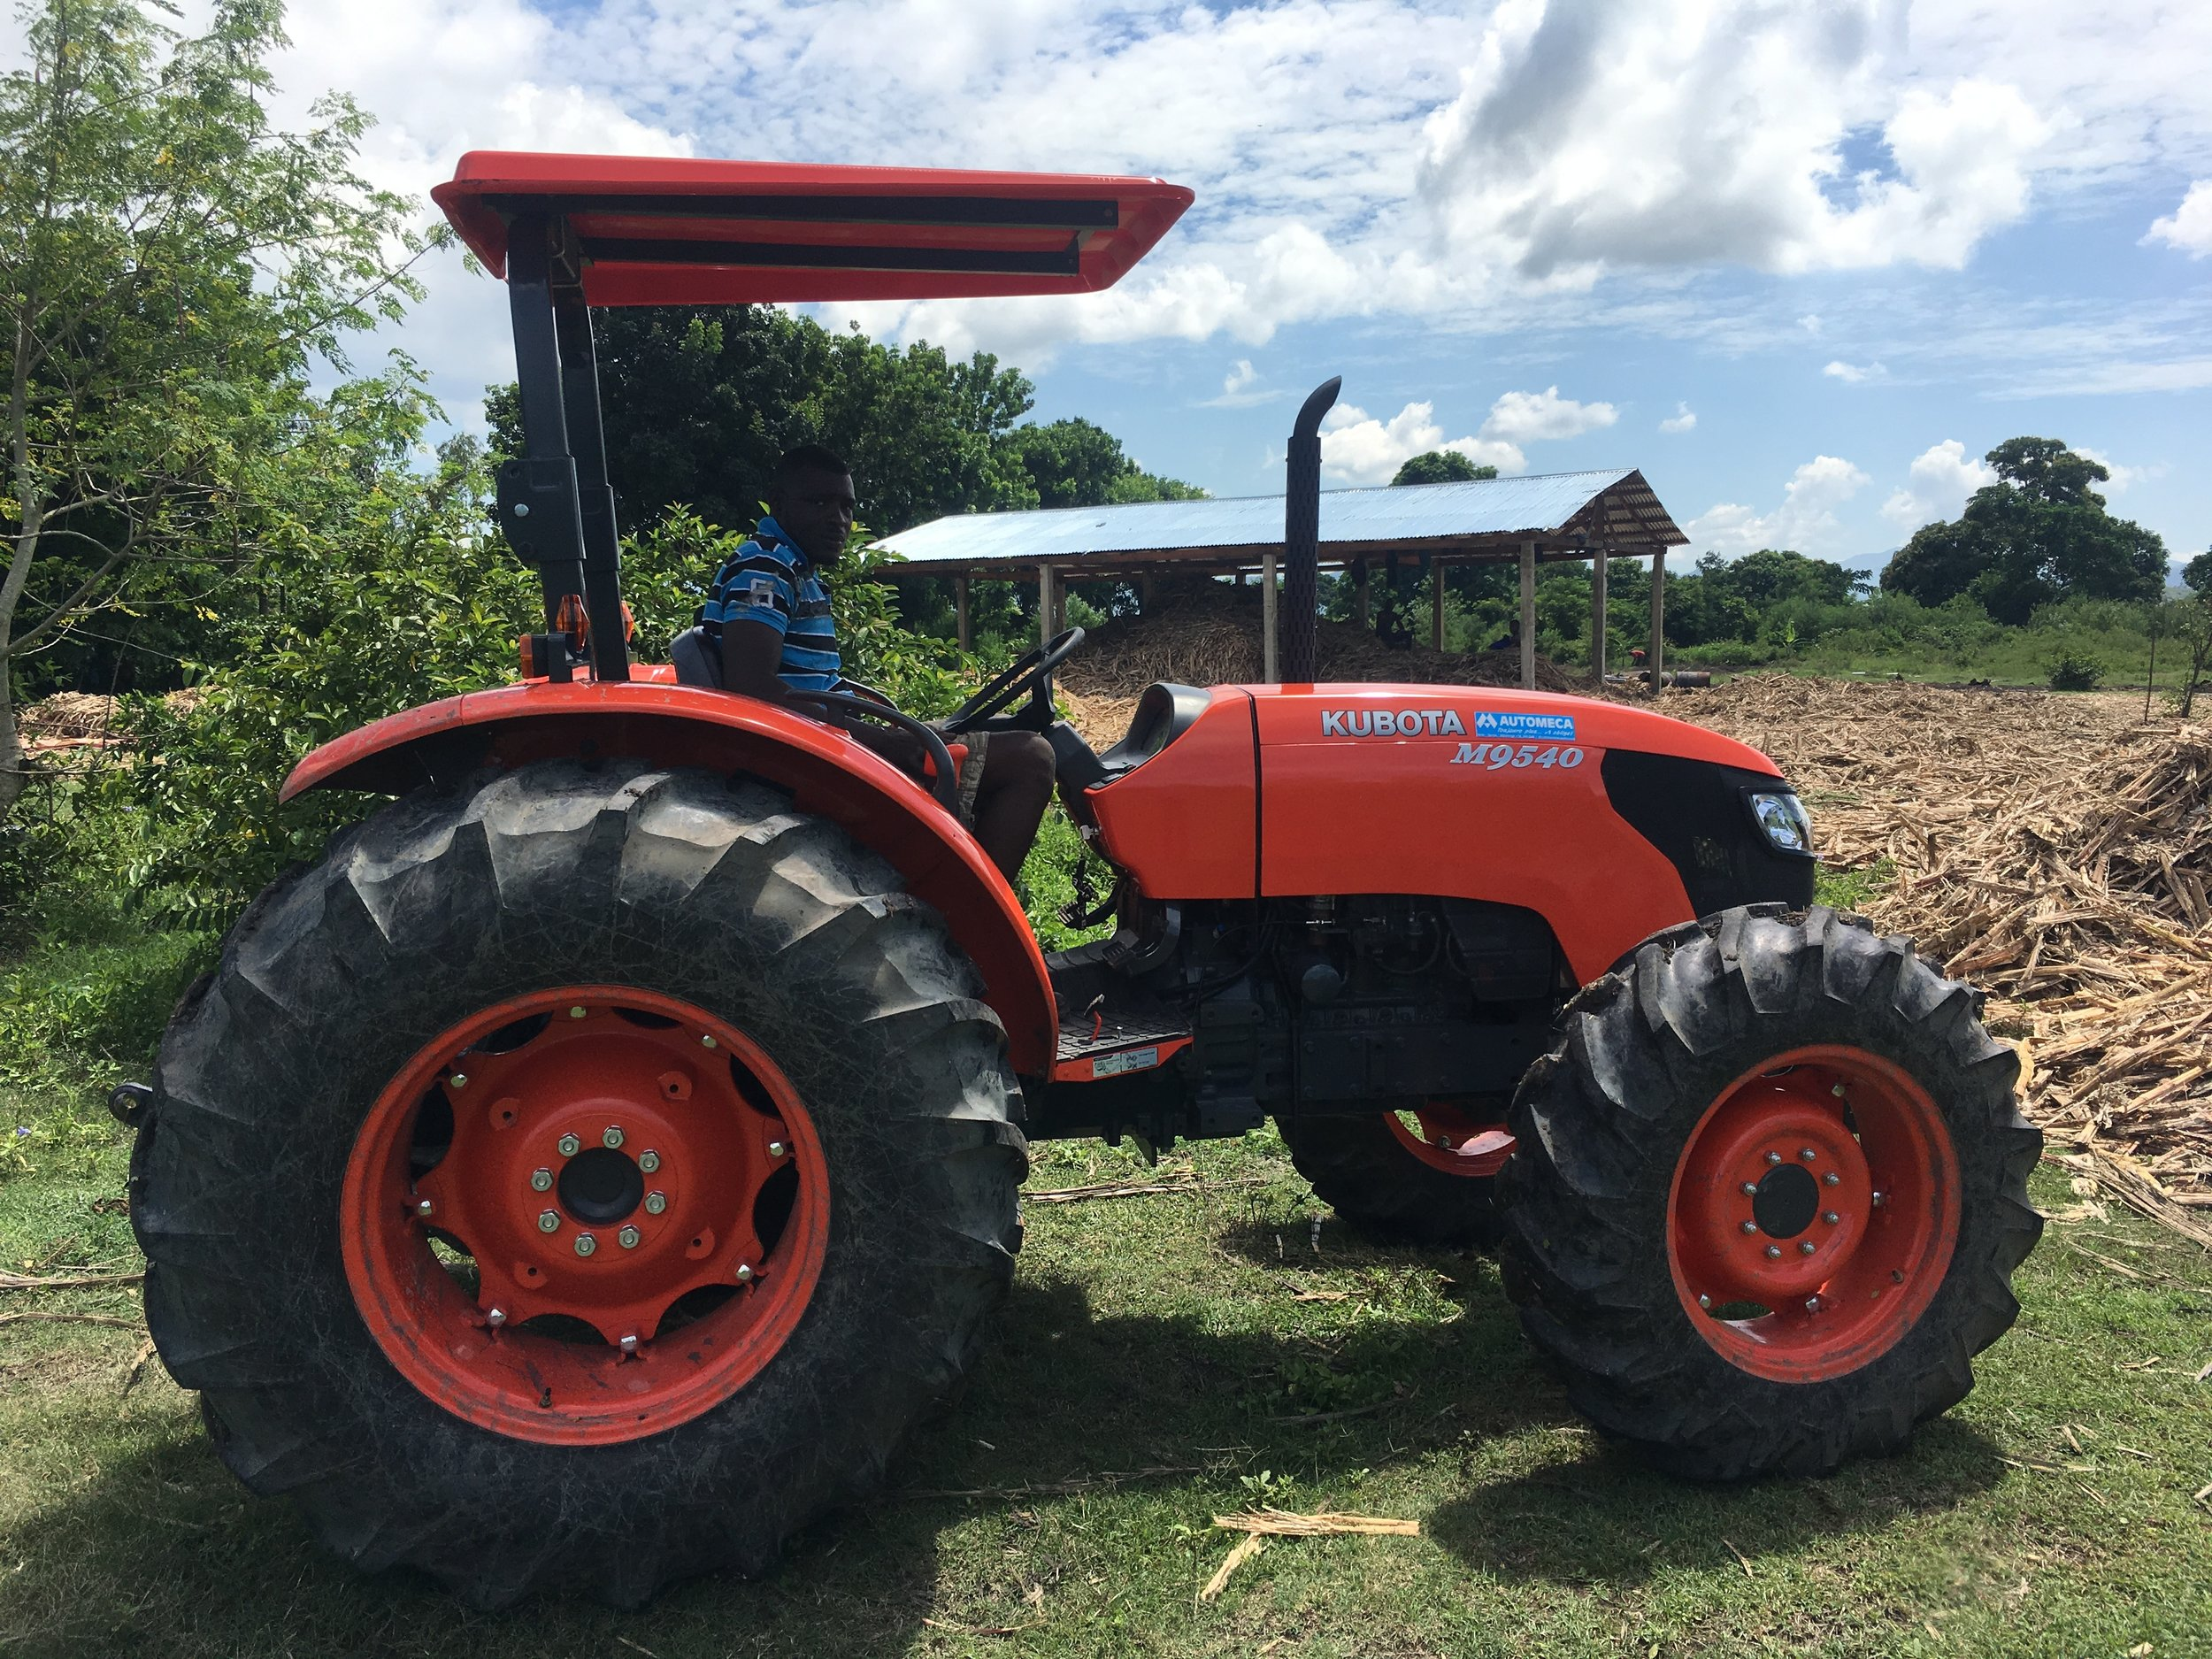 A new tractor; a purchase made possible with our loan.